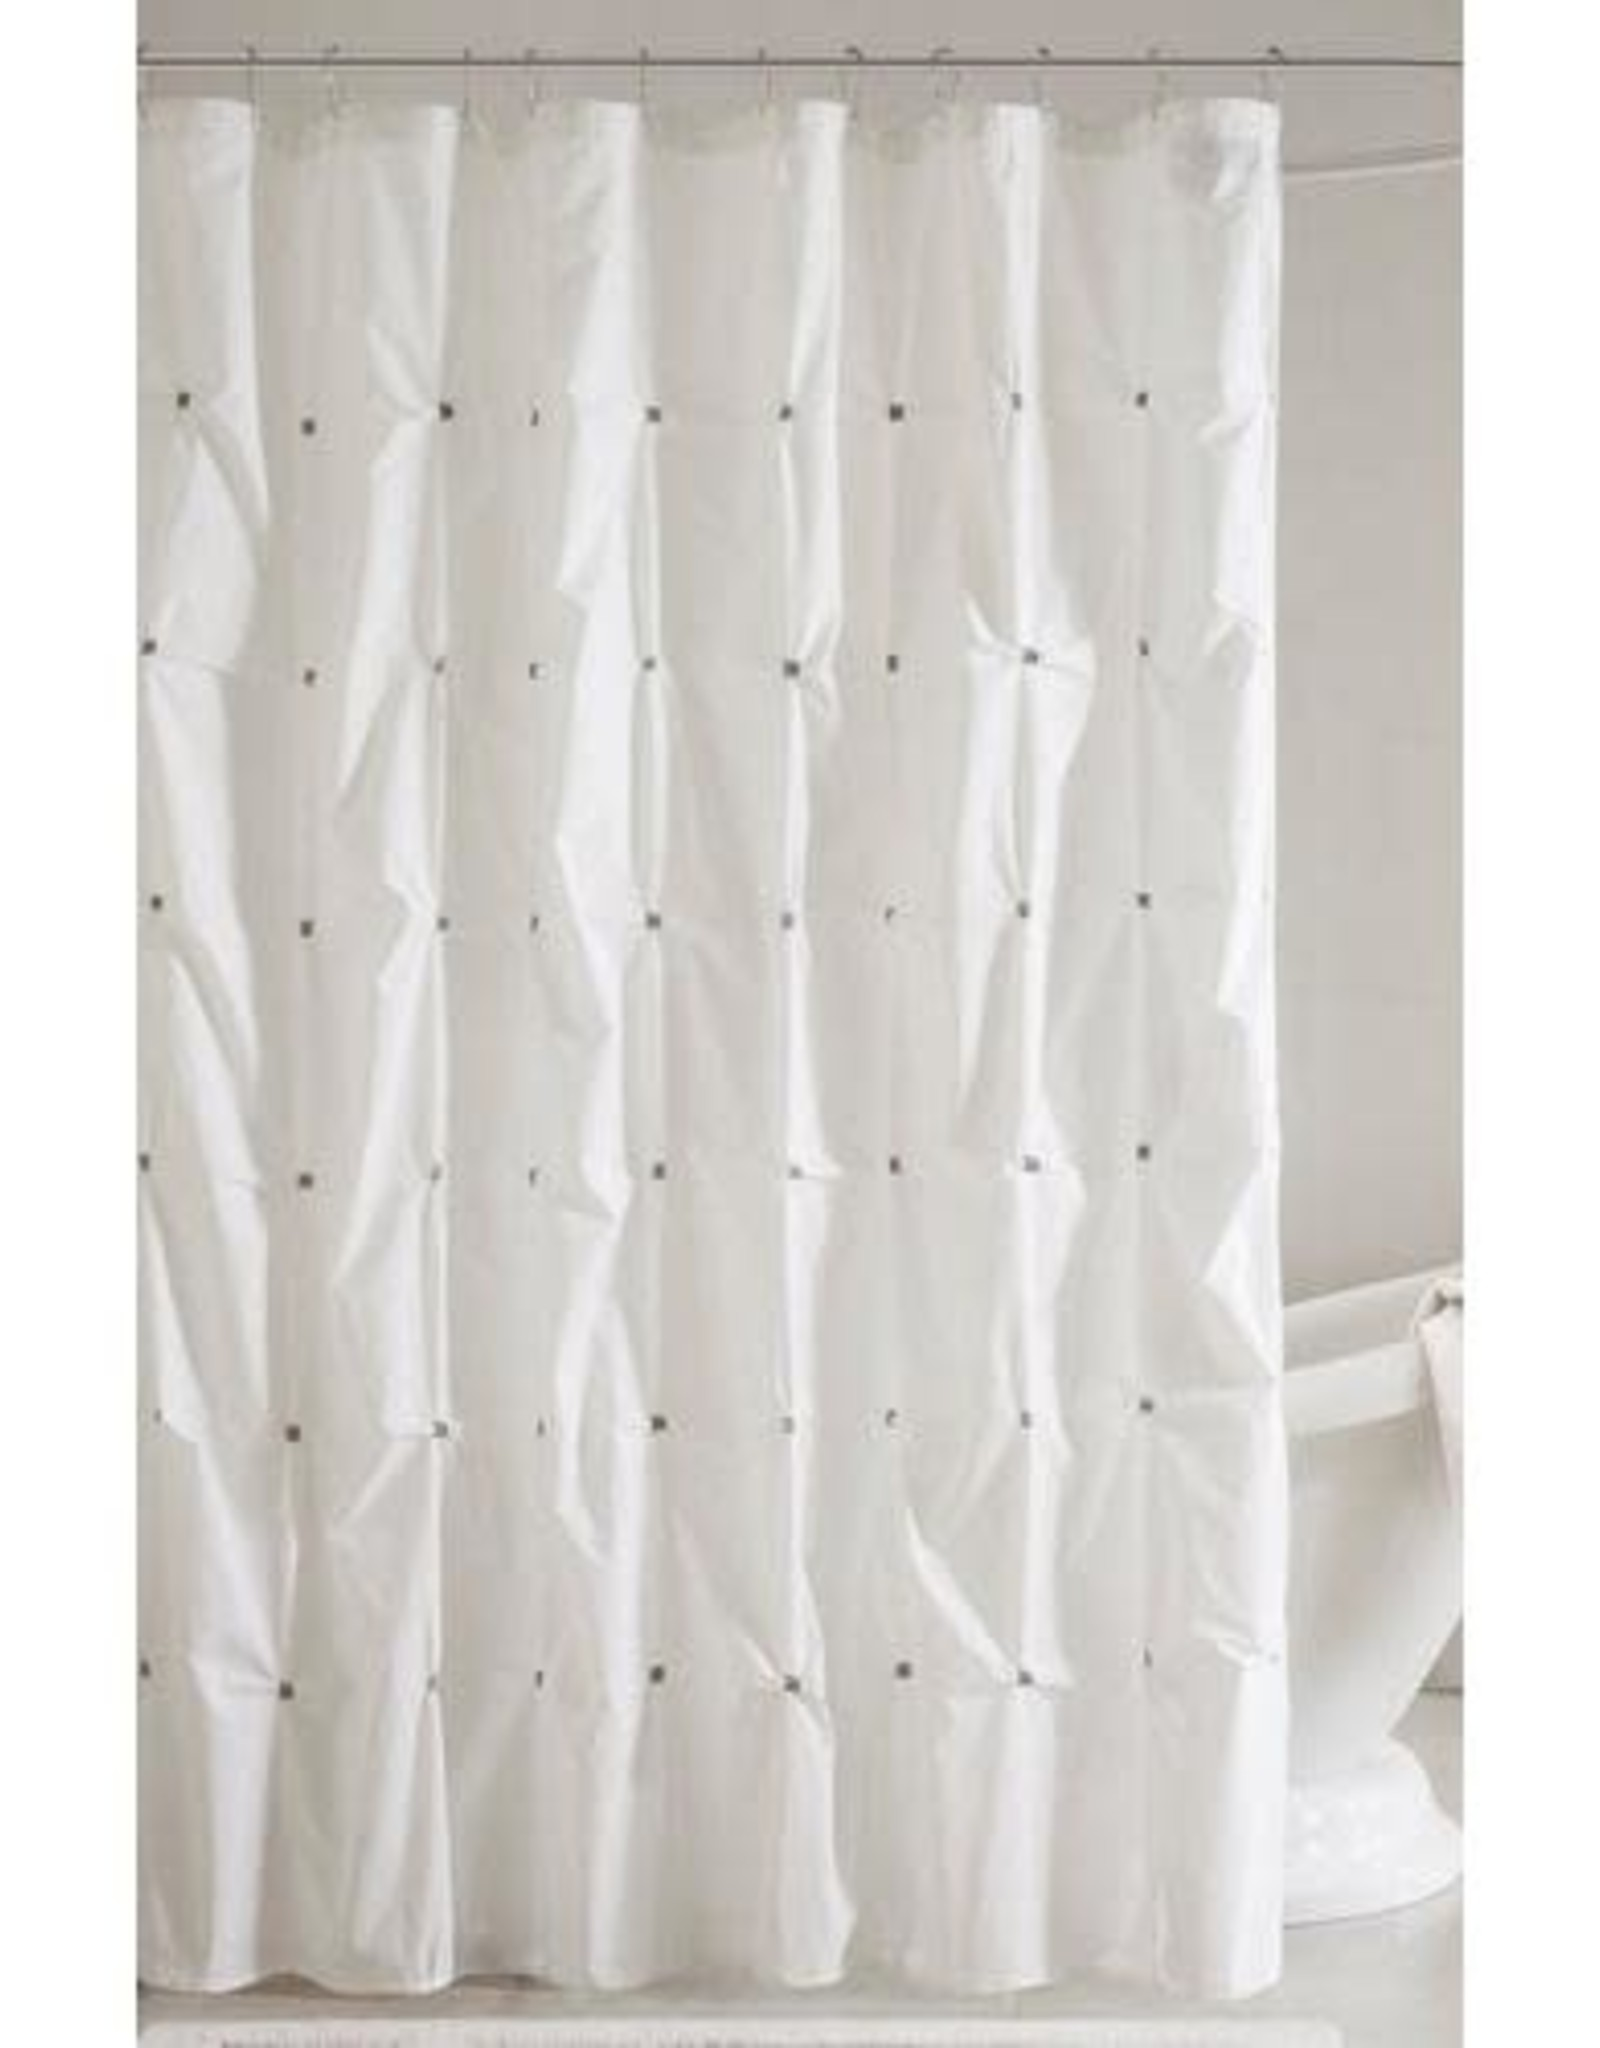 JLA Home II MASIE 72X72 Shower curtain WHITE